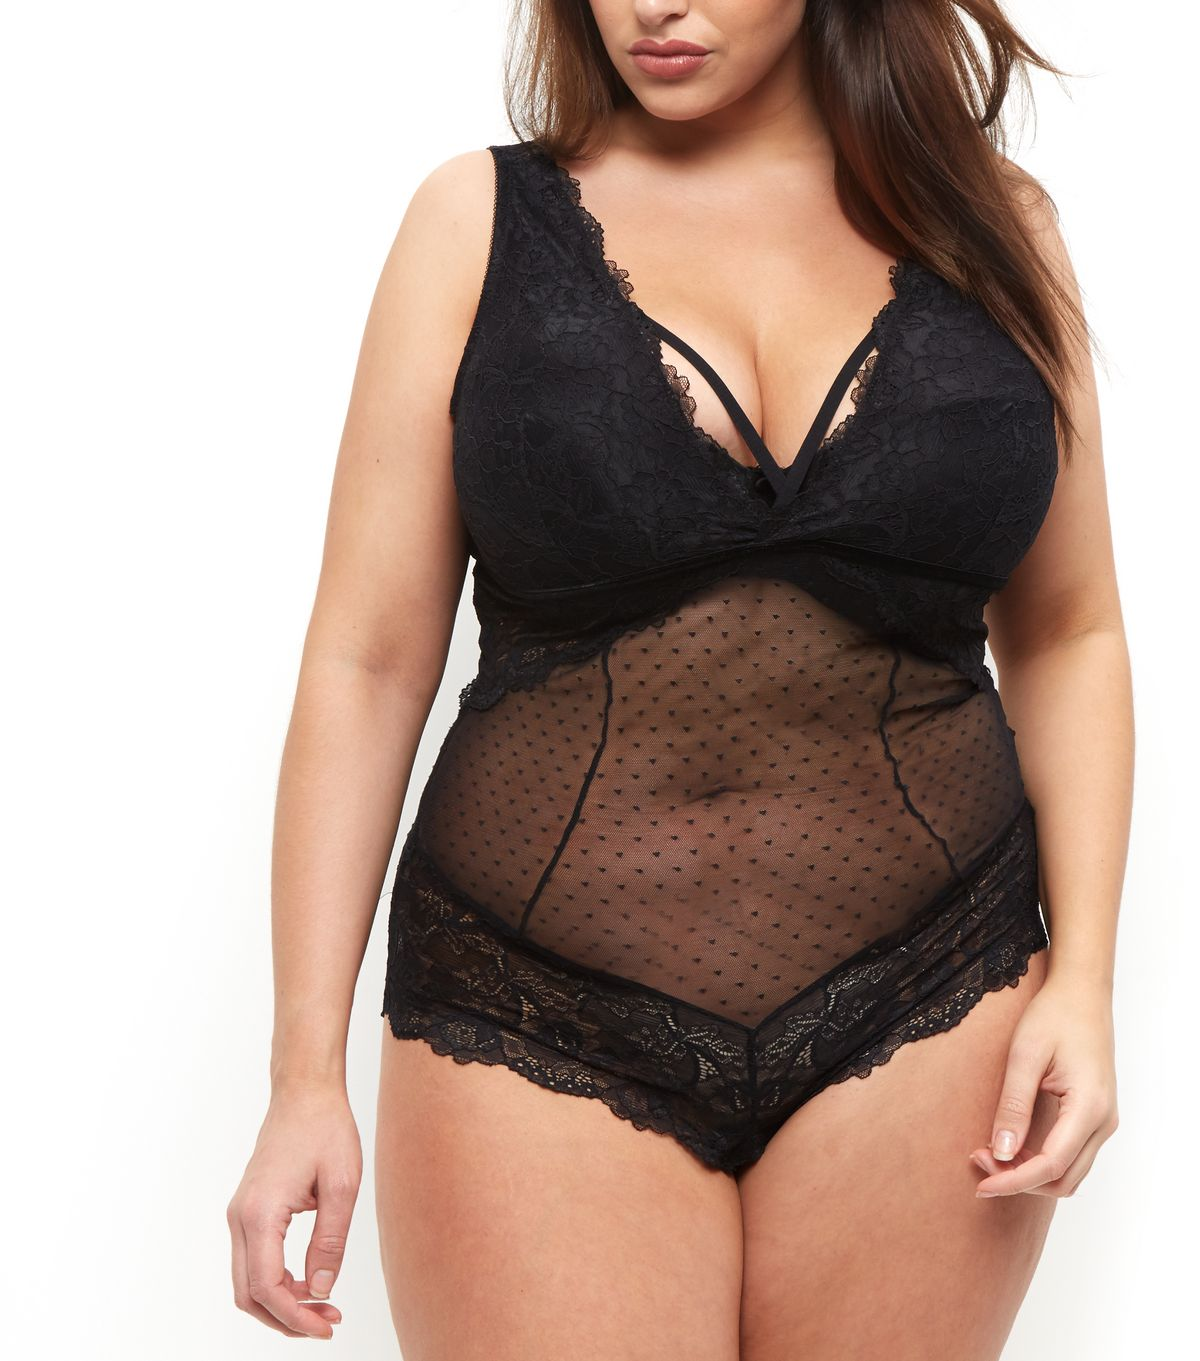 lingerie for plus sizes in uk